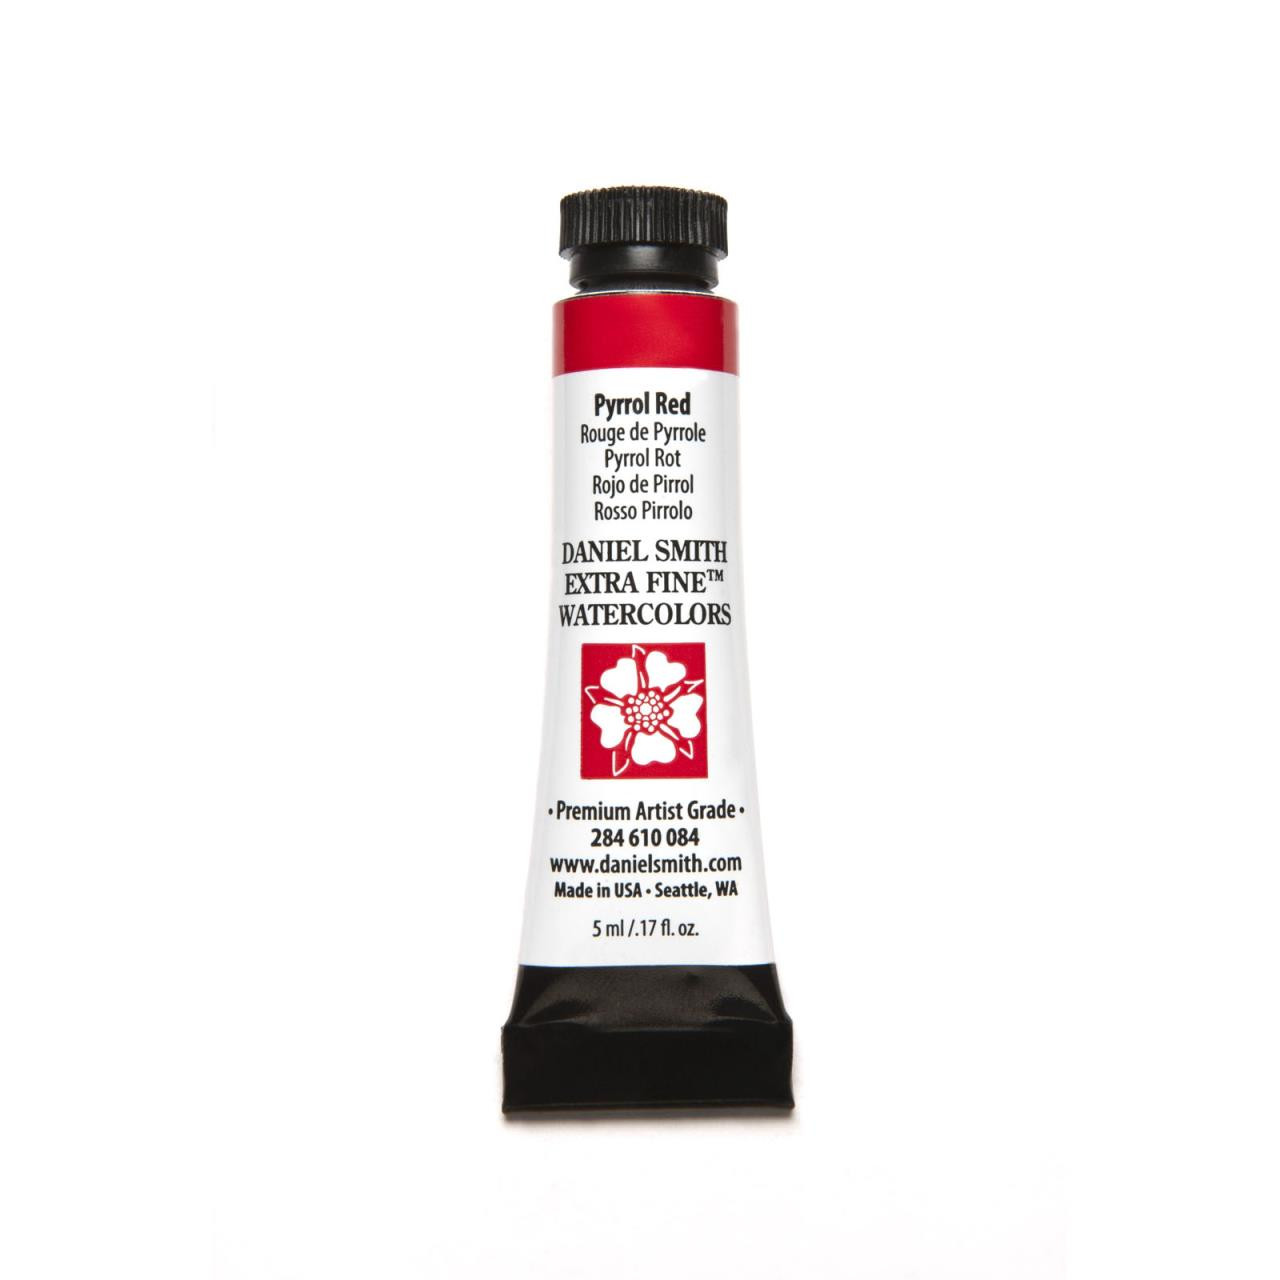 Pyrrol Red, DANIEL SMITH Extra Fine Watercolors 5ml Tubes -